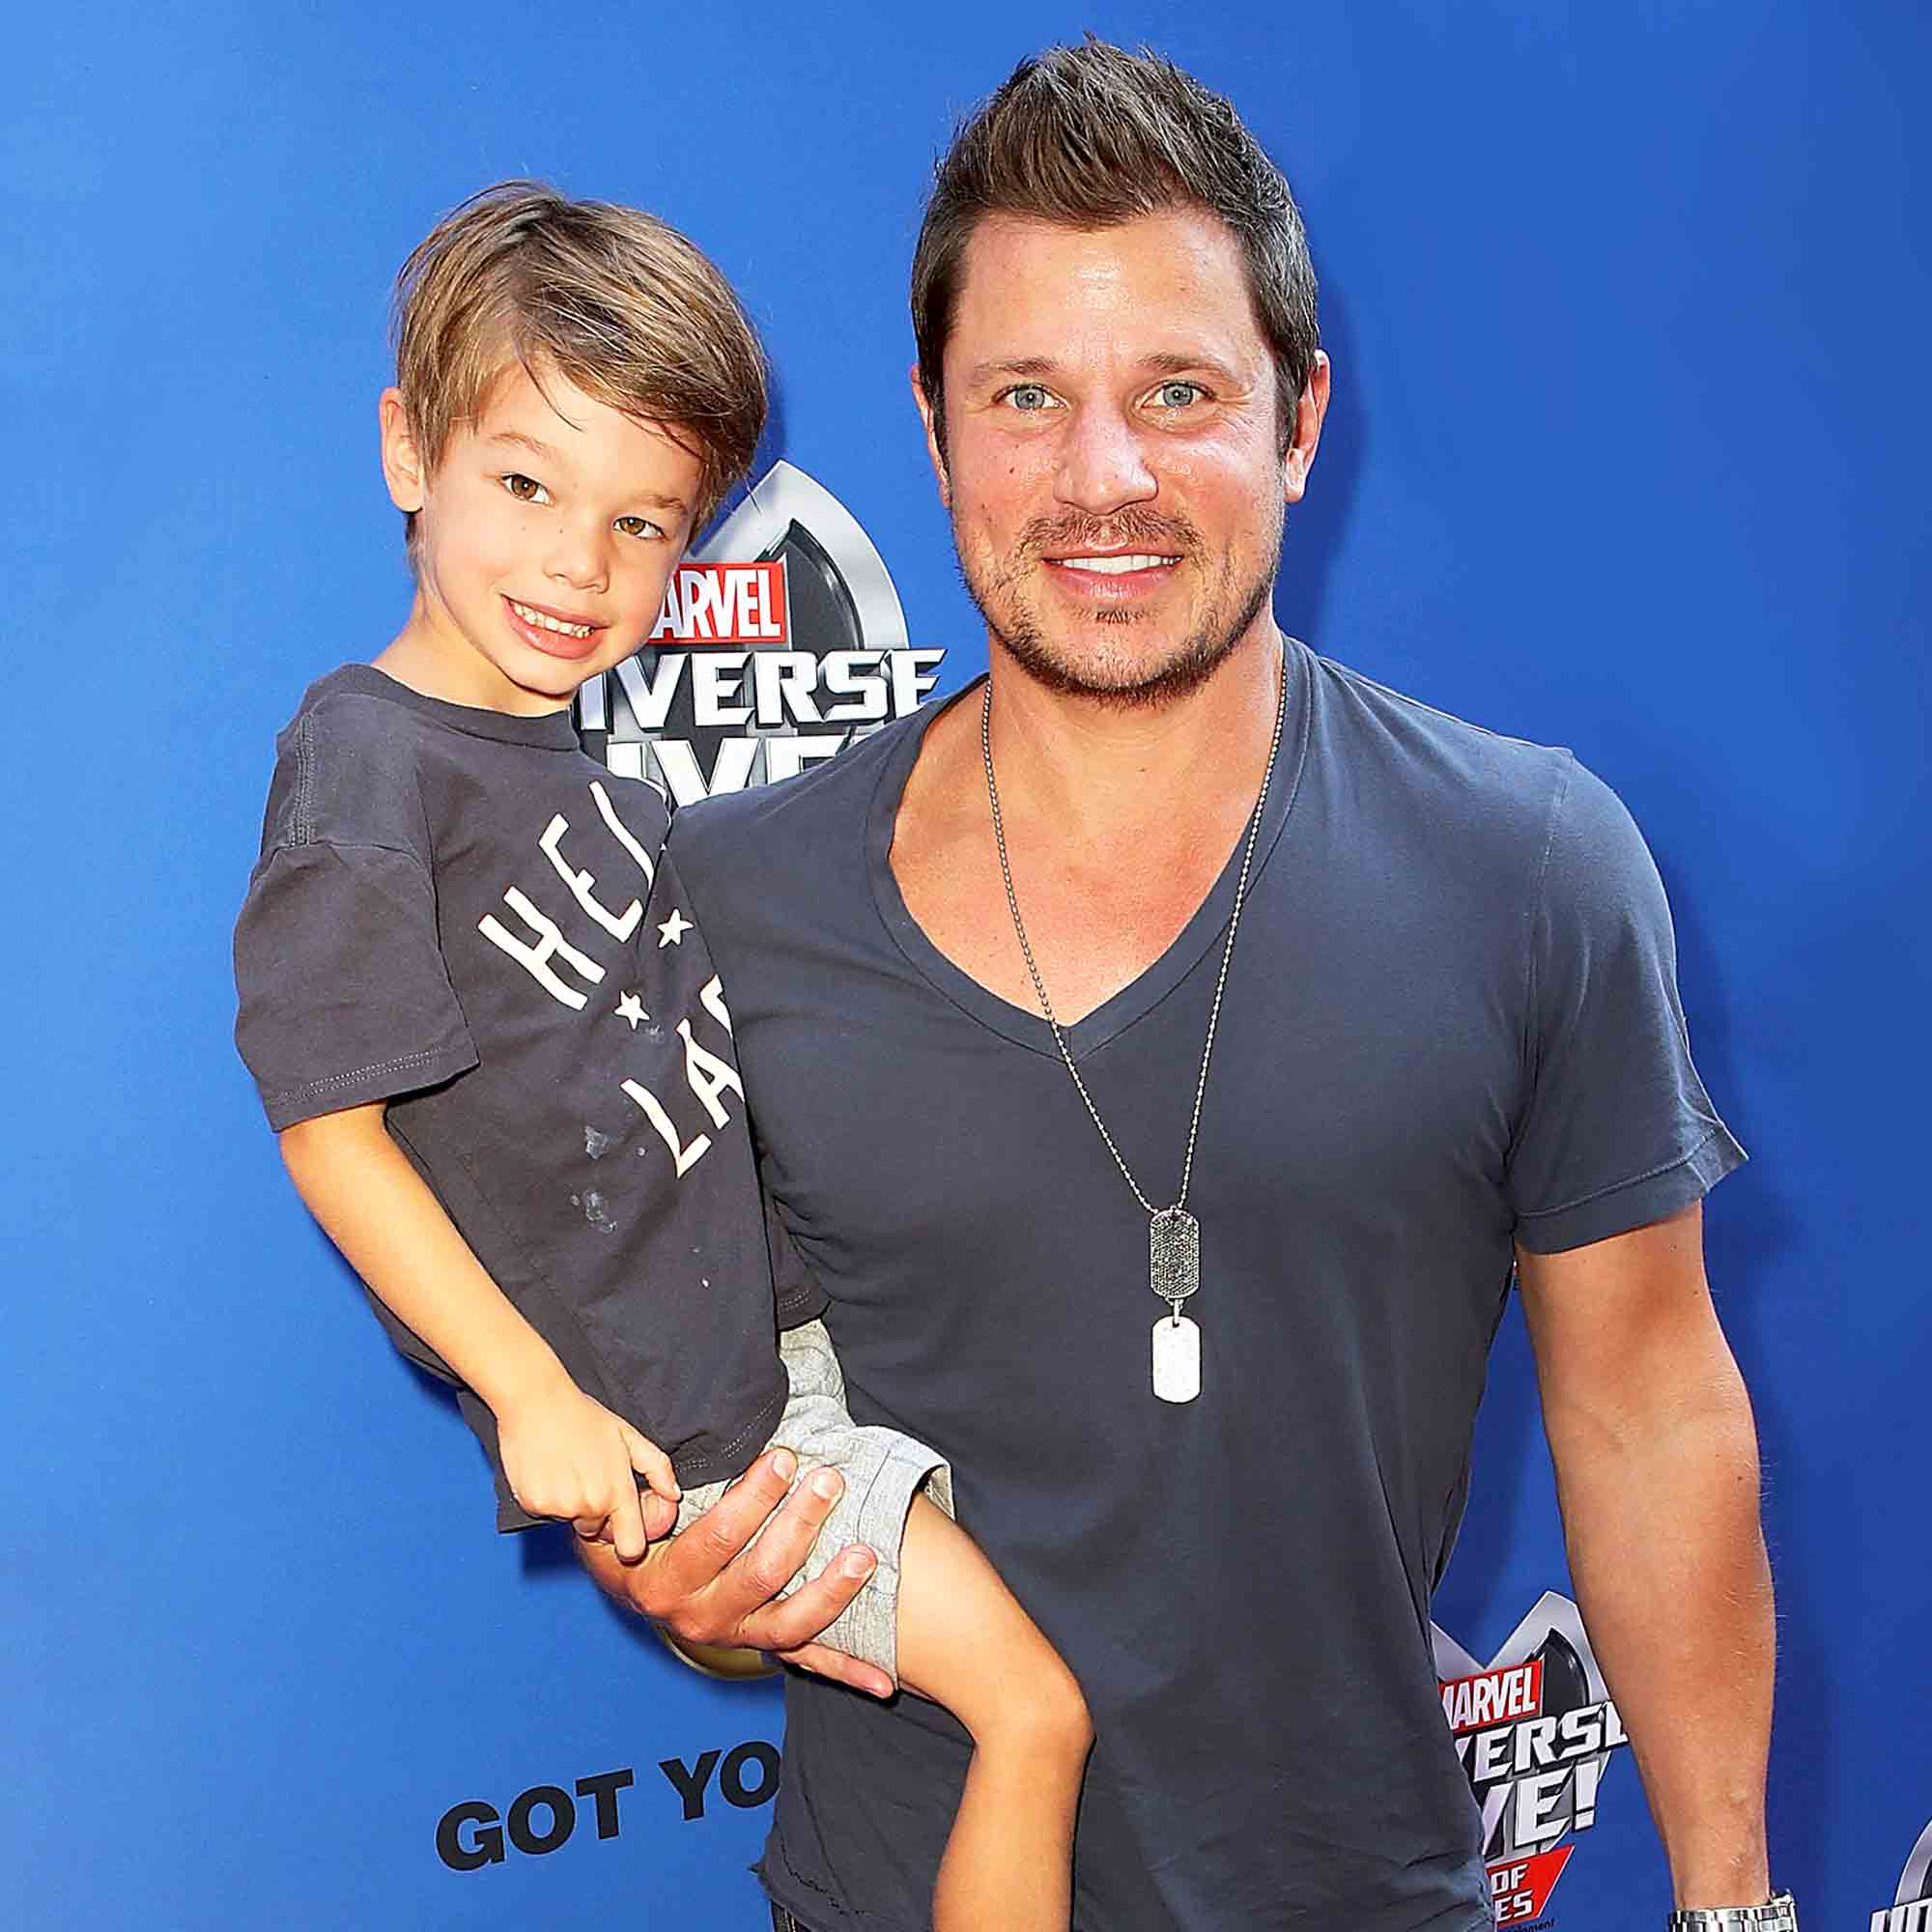 Nick Lachey and son Camden arrive at Marvel Universe LIVE! Age Of Heroes World Premiere Celebrity Red Carpet Event at Staples Center on July 8, 2017 in Los Angeles, California.